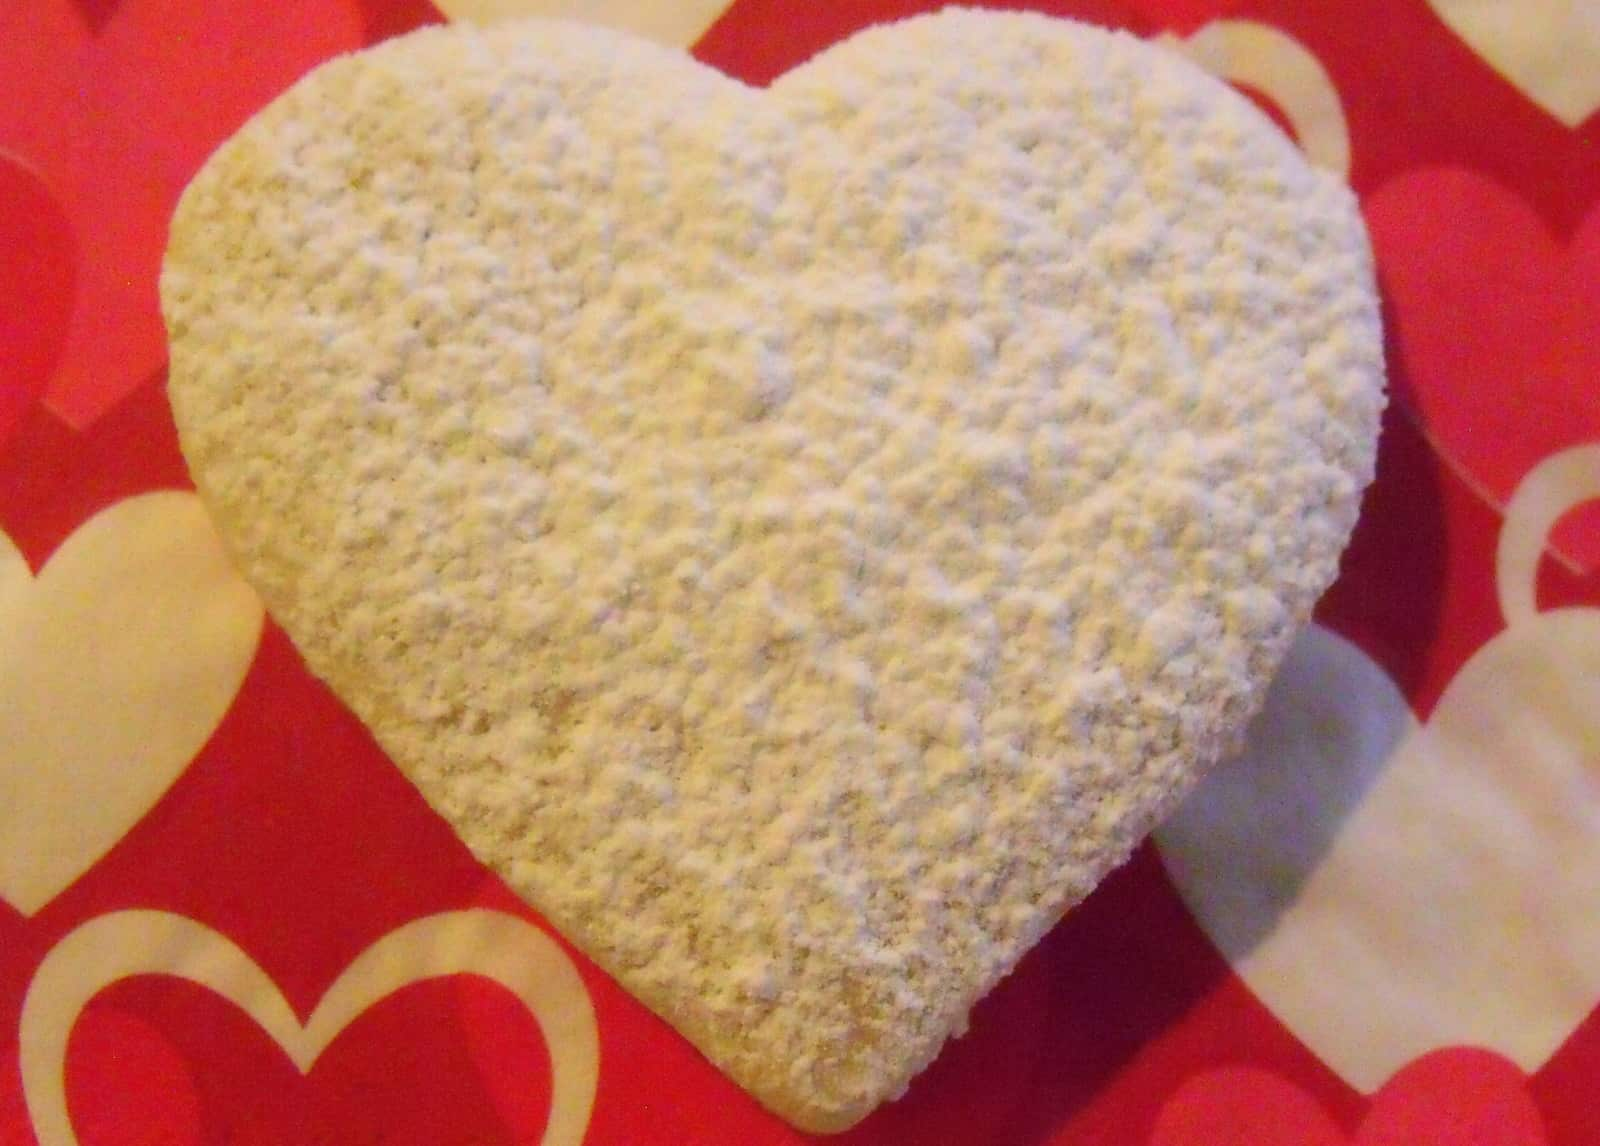 Sugar dusted heart cookie